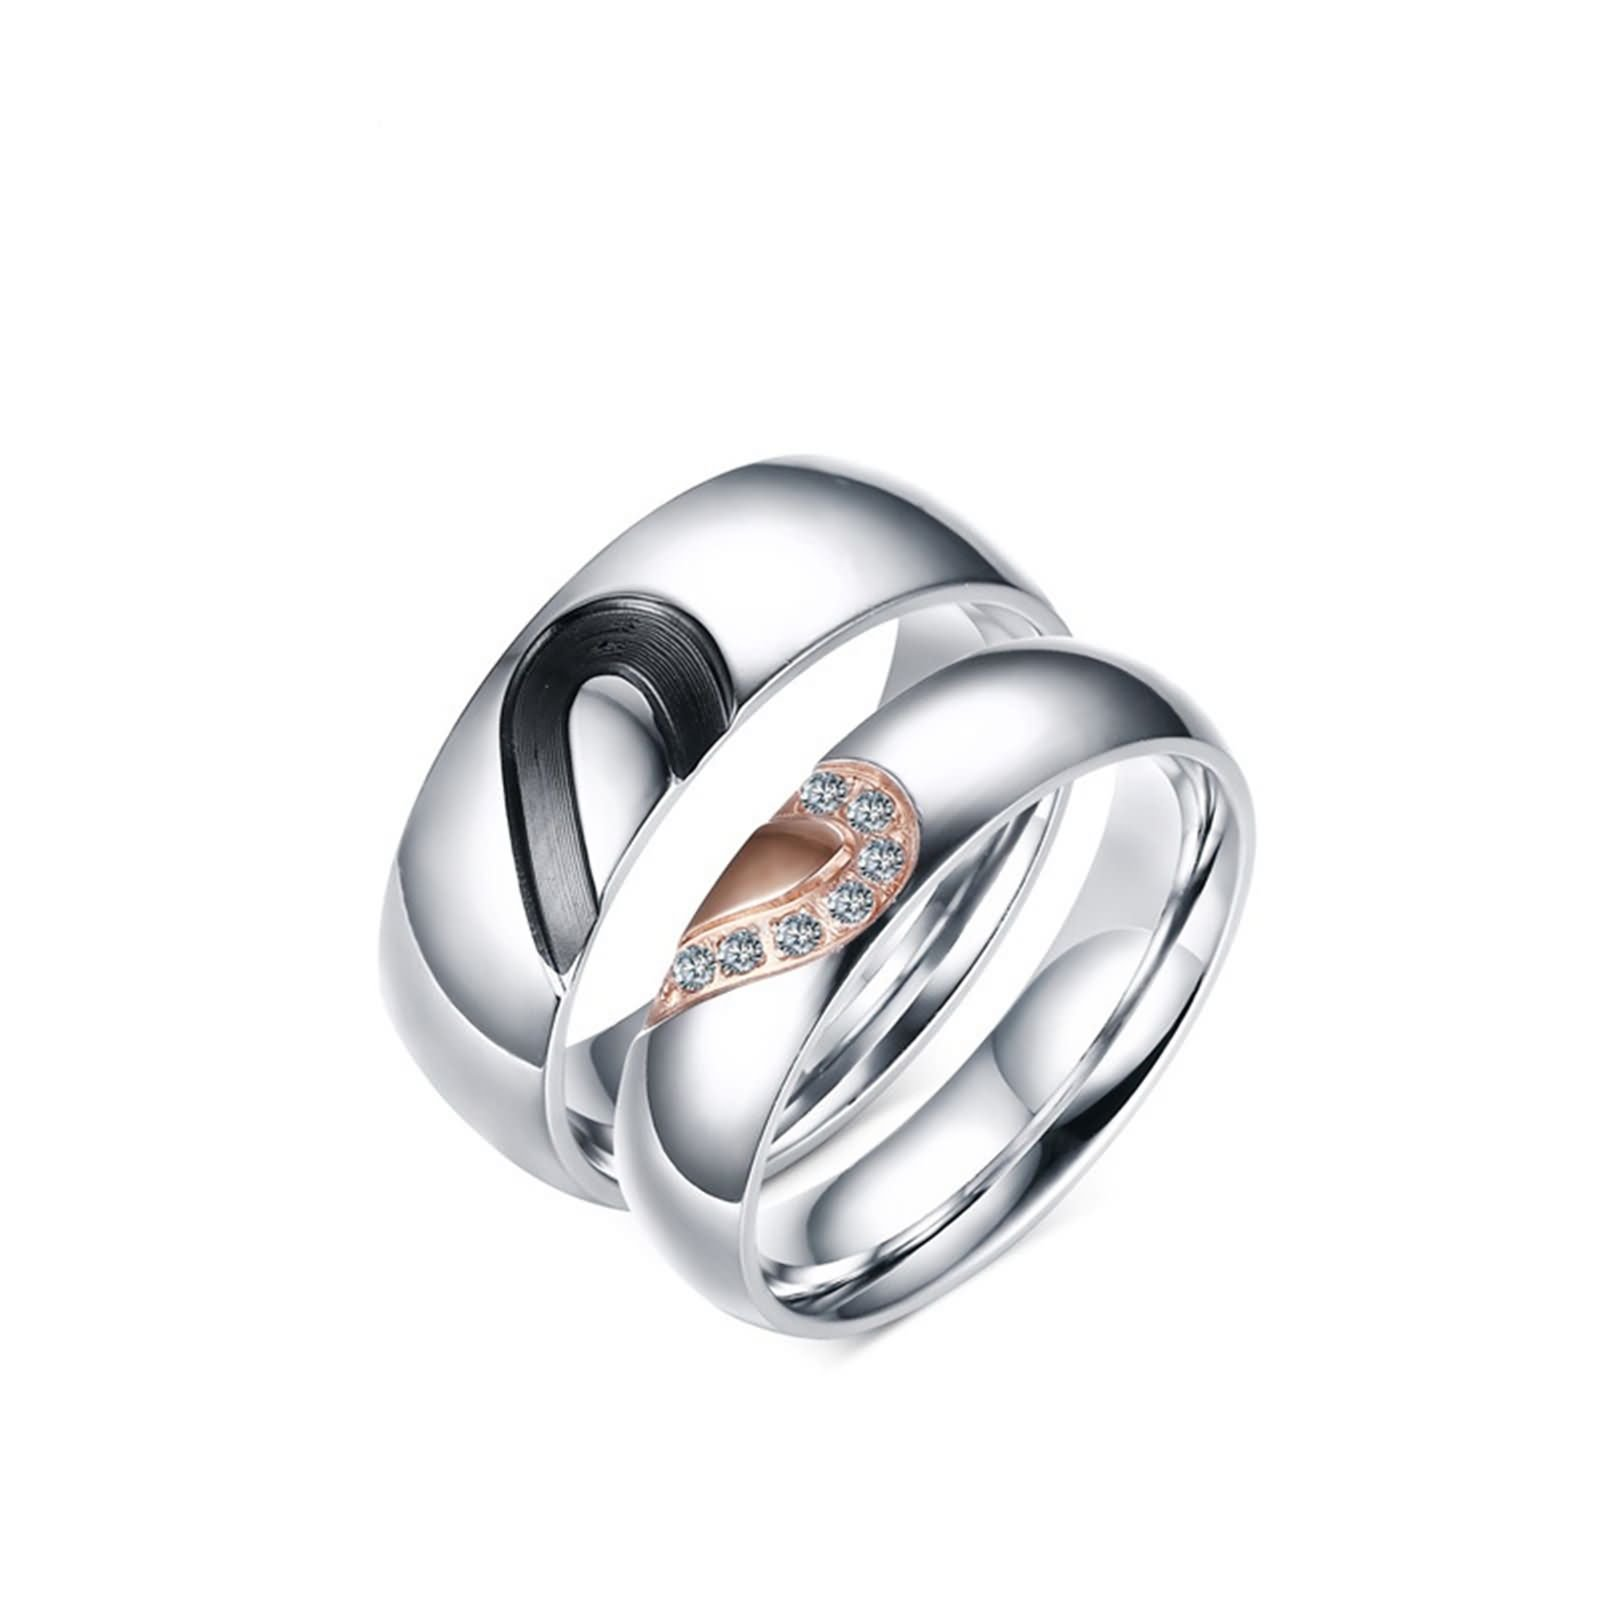 Wedding Rings Set for Him and Her Couple Rings Stainless Steel Puzzle Heart CZ Size 8 & Men Size 11